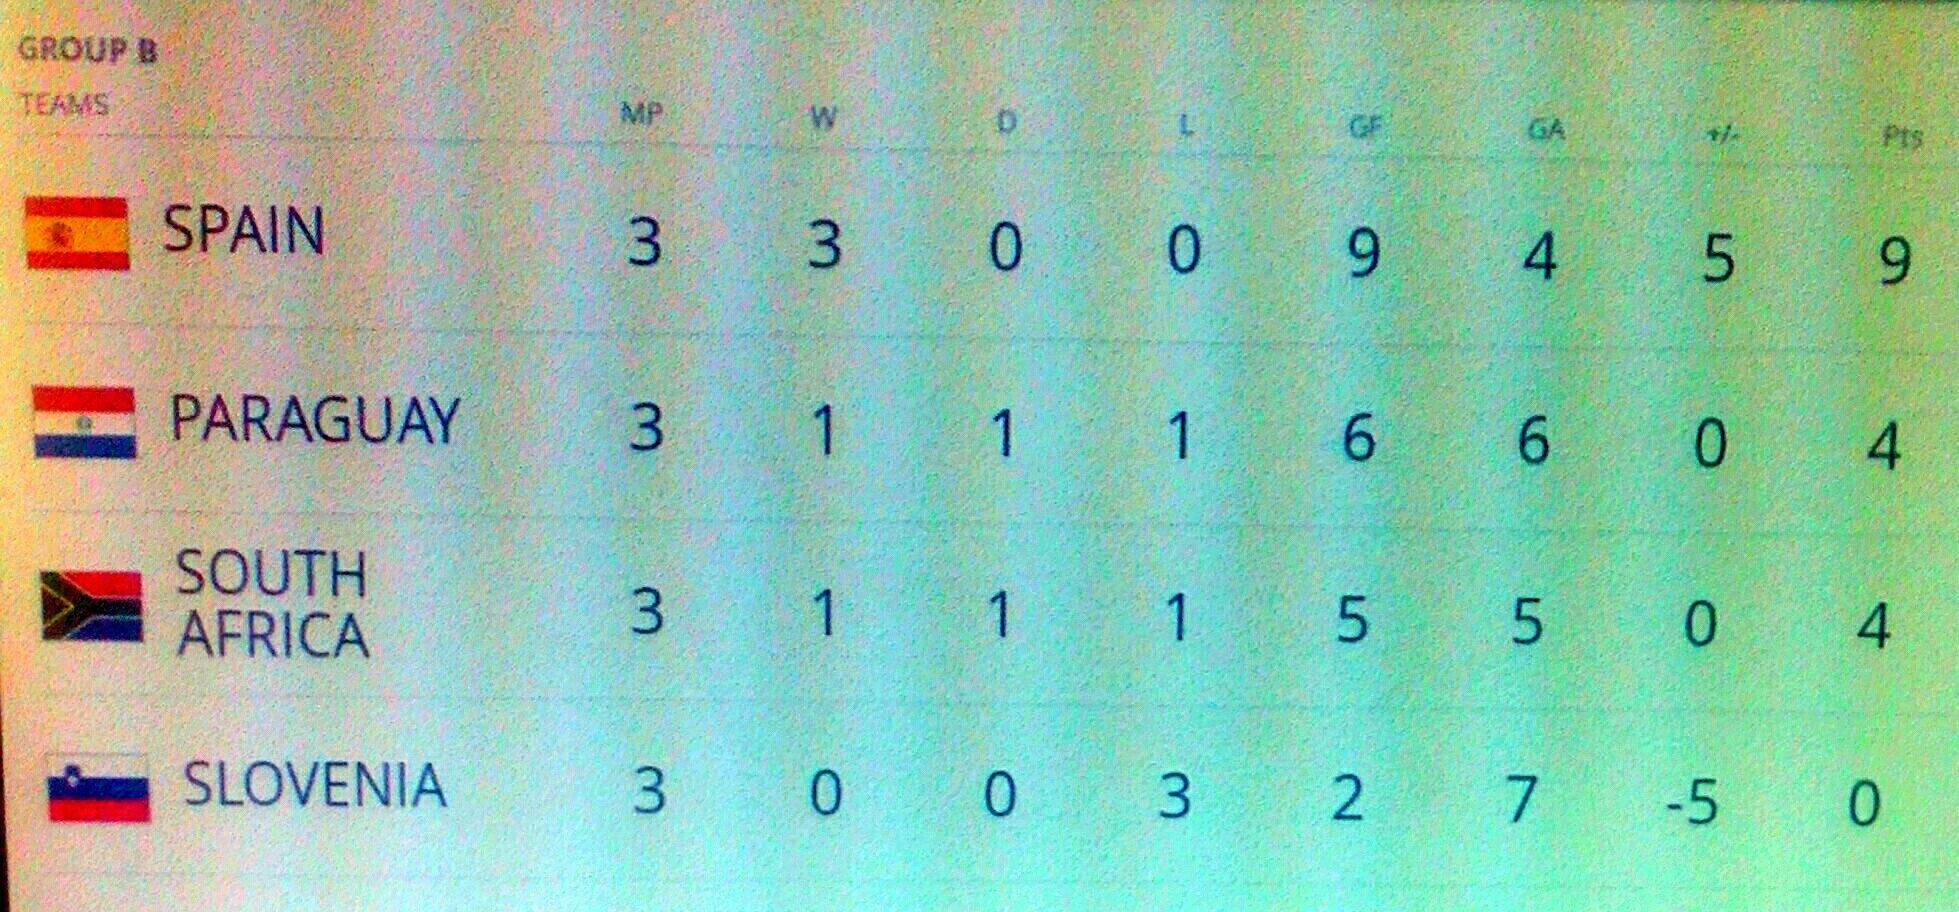 Final Standings - Group B at the 2002 World Cup Finals. Easy for Spain but Paraguay made 2nd place by 1 goal.